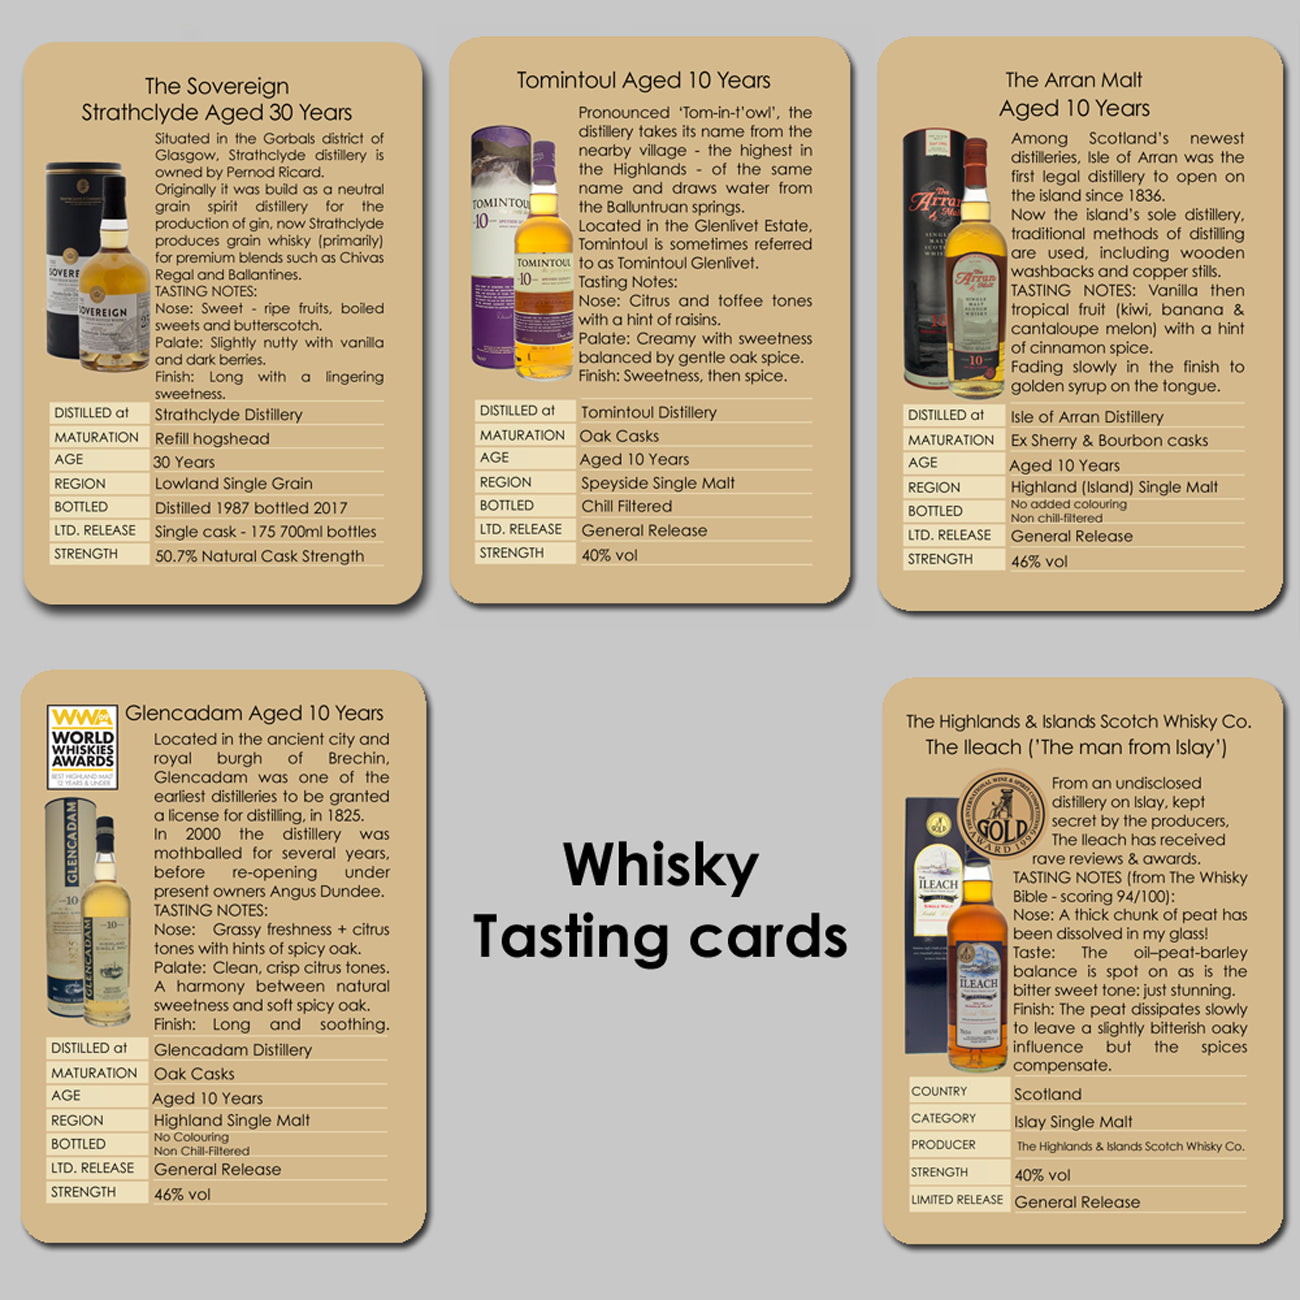 Individual tasting cards including 30 year old Scotch whisky.  Contains tasting notes and distillery information on Strathclyde aged 30 years, Tomintoul, Glencadam, Arran Malt and The Ileach Islay single malt.